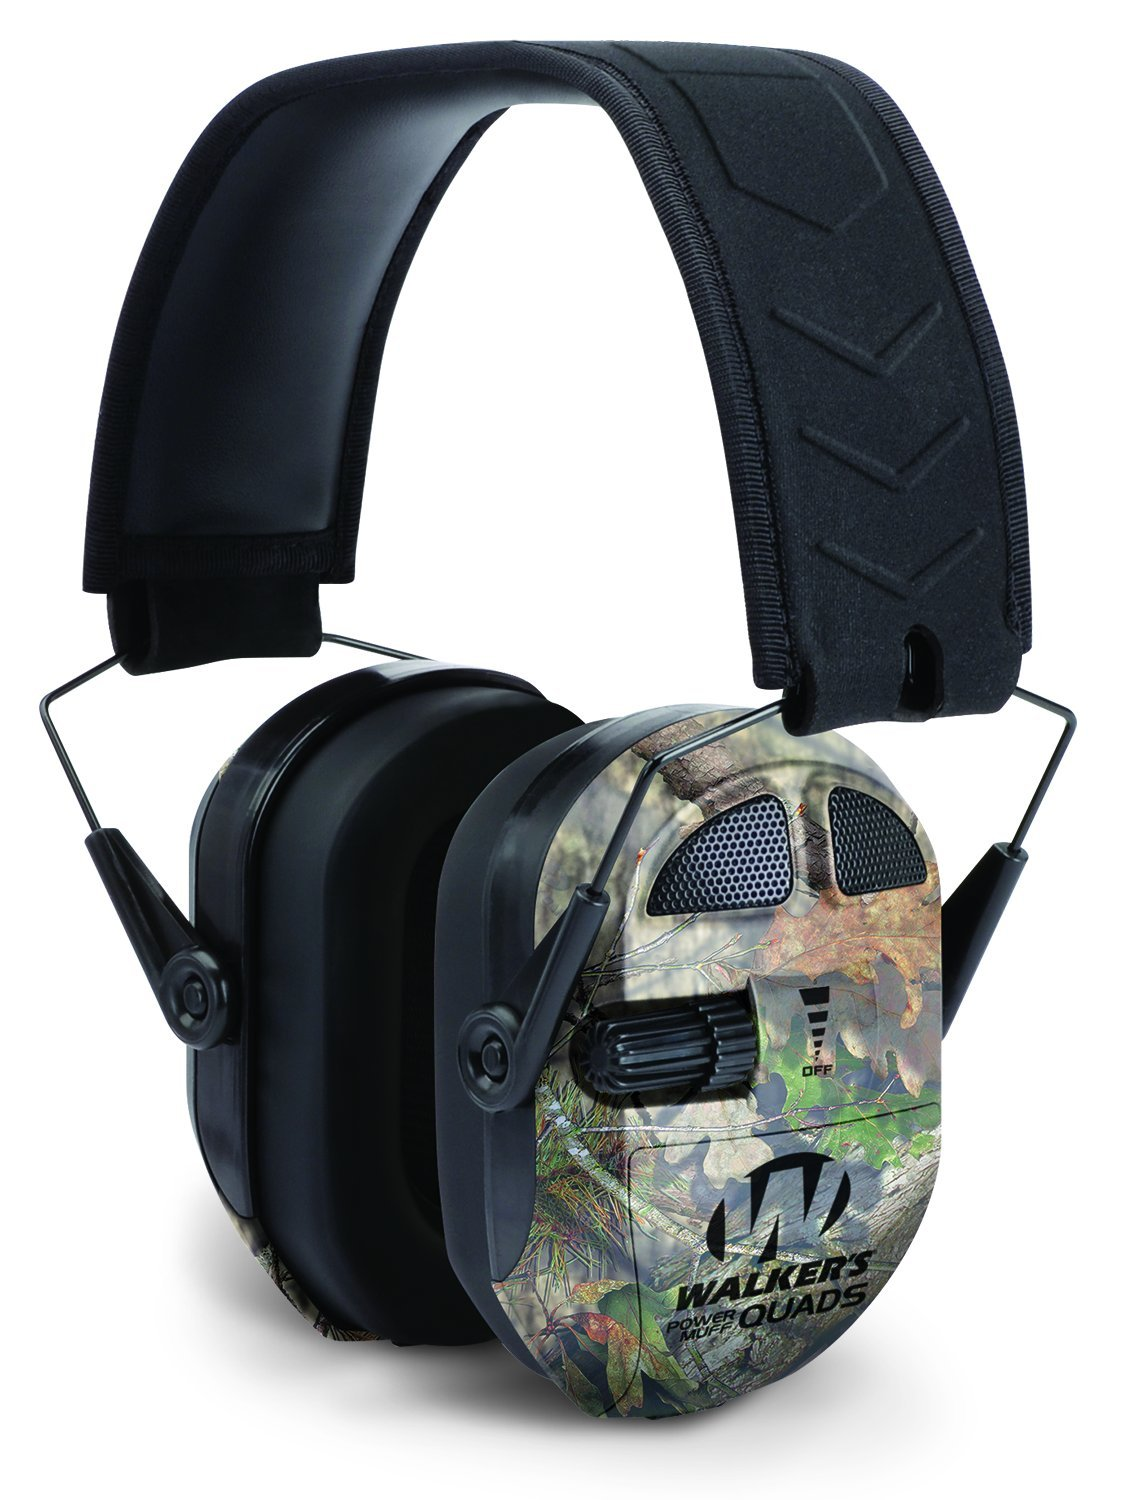 Walkers Game Ear Ultimate Power Muff Natural Price Tracking